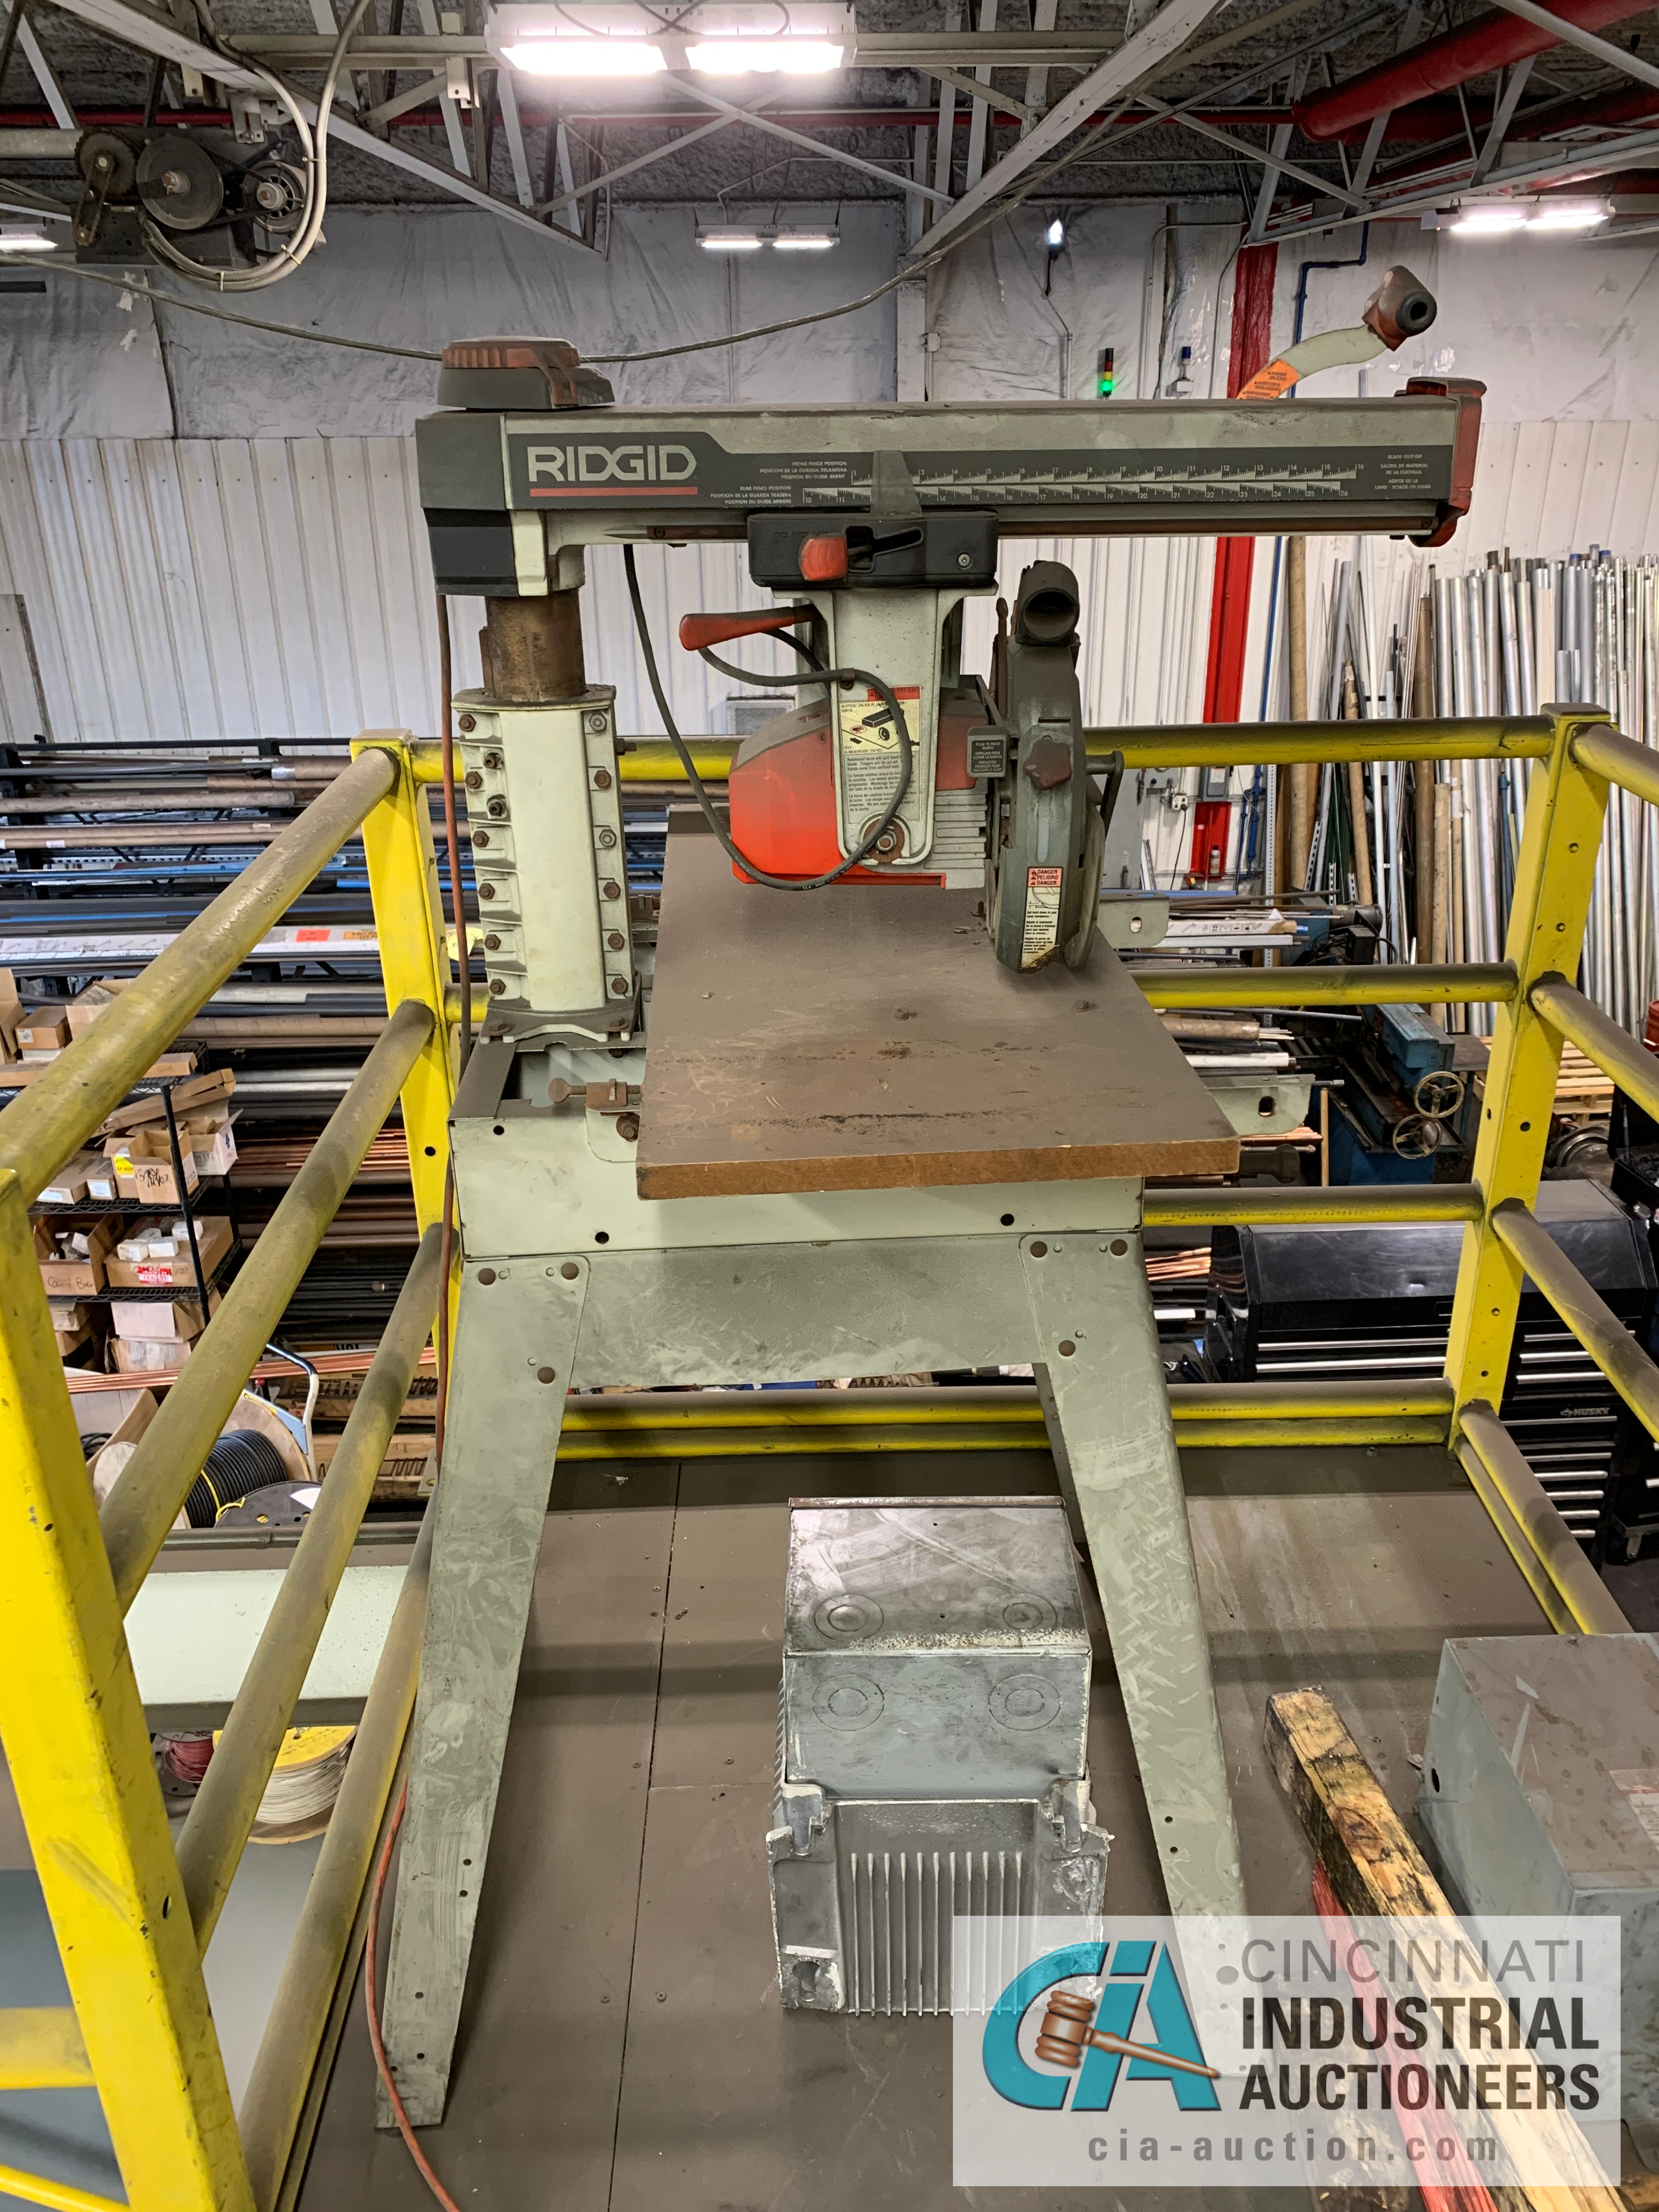 RIGID RS1000 RADIAL ARM SAW **RIGGING FEE DUE TO SHOEMAKER $50.00**